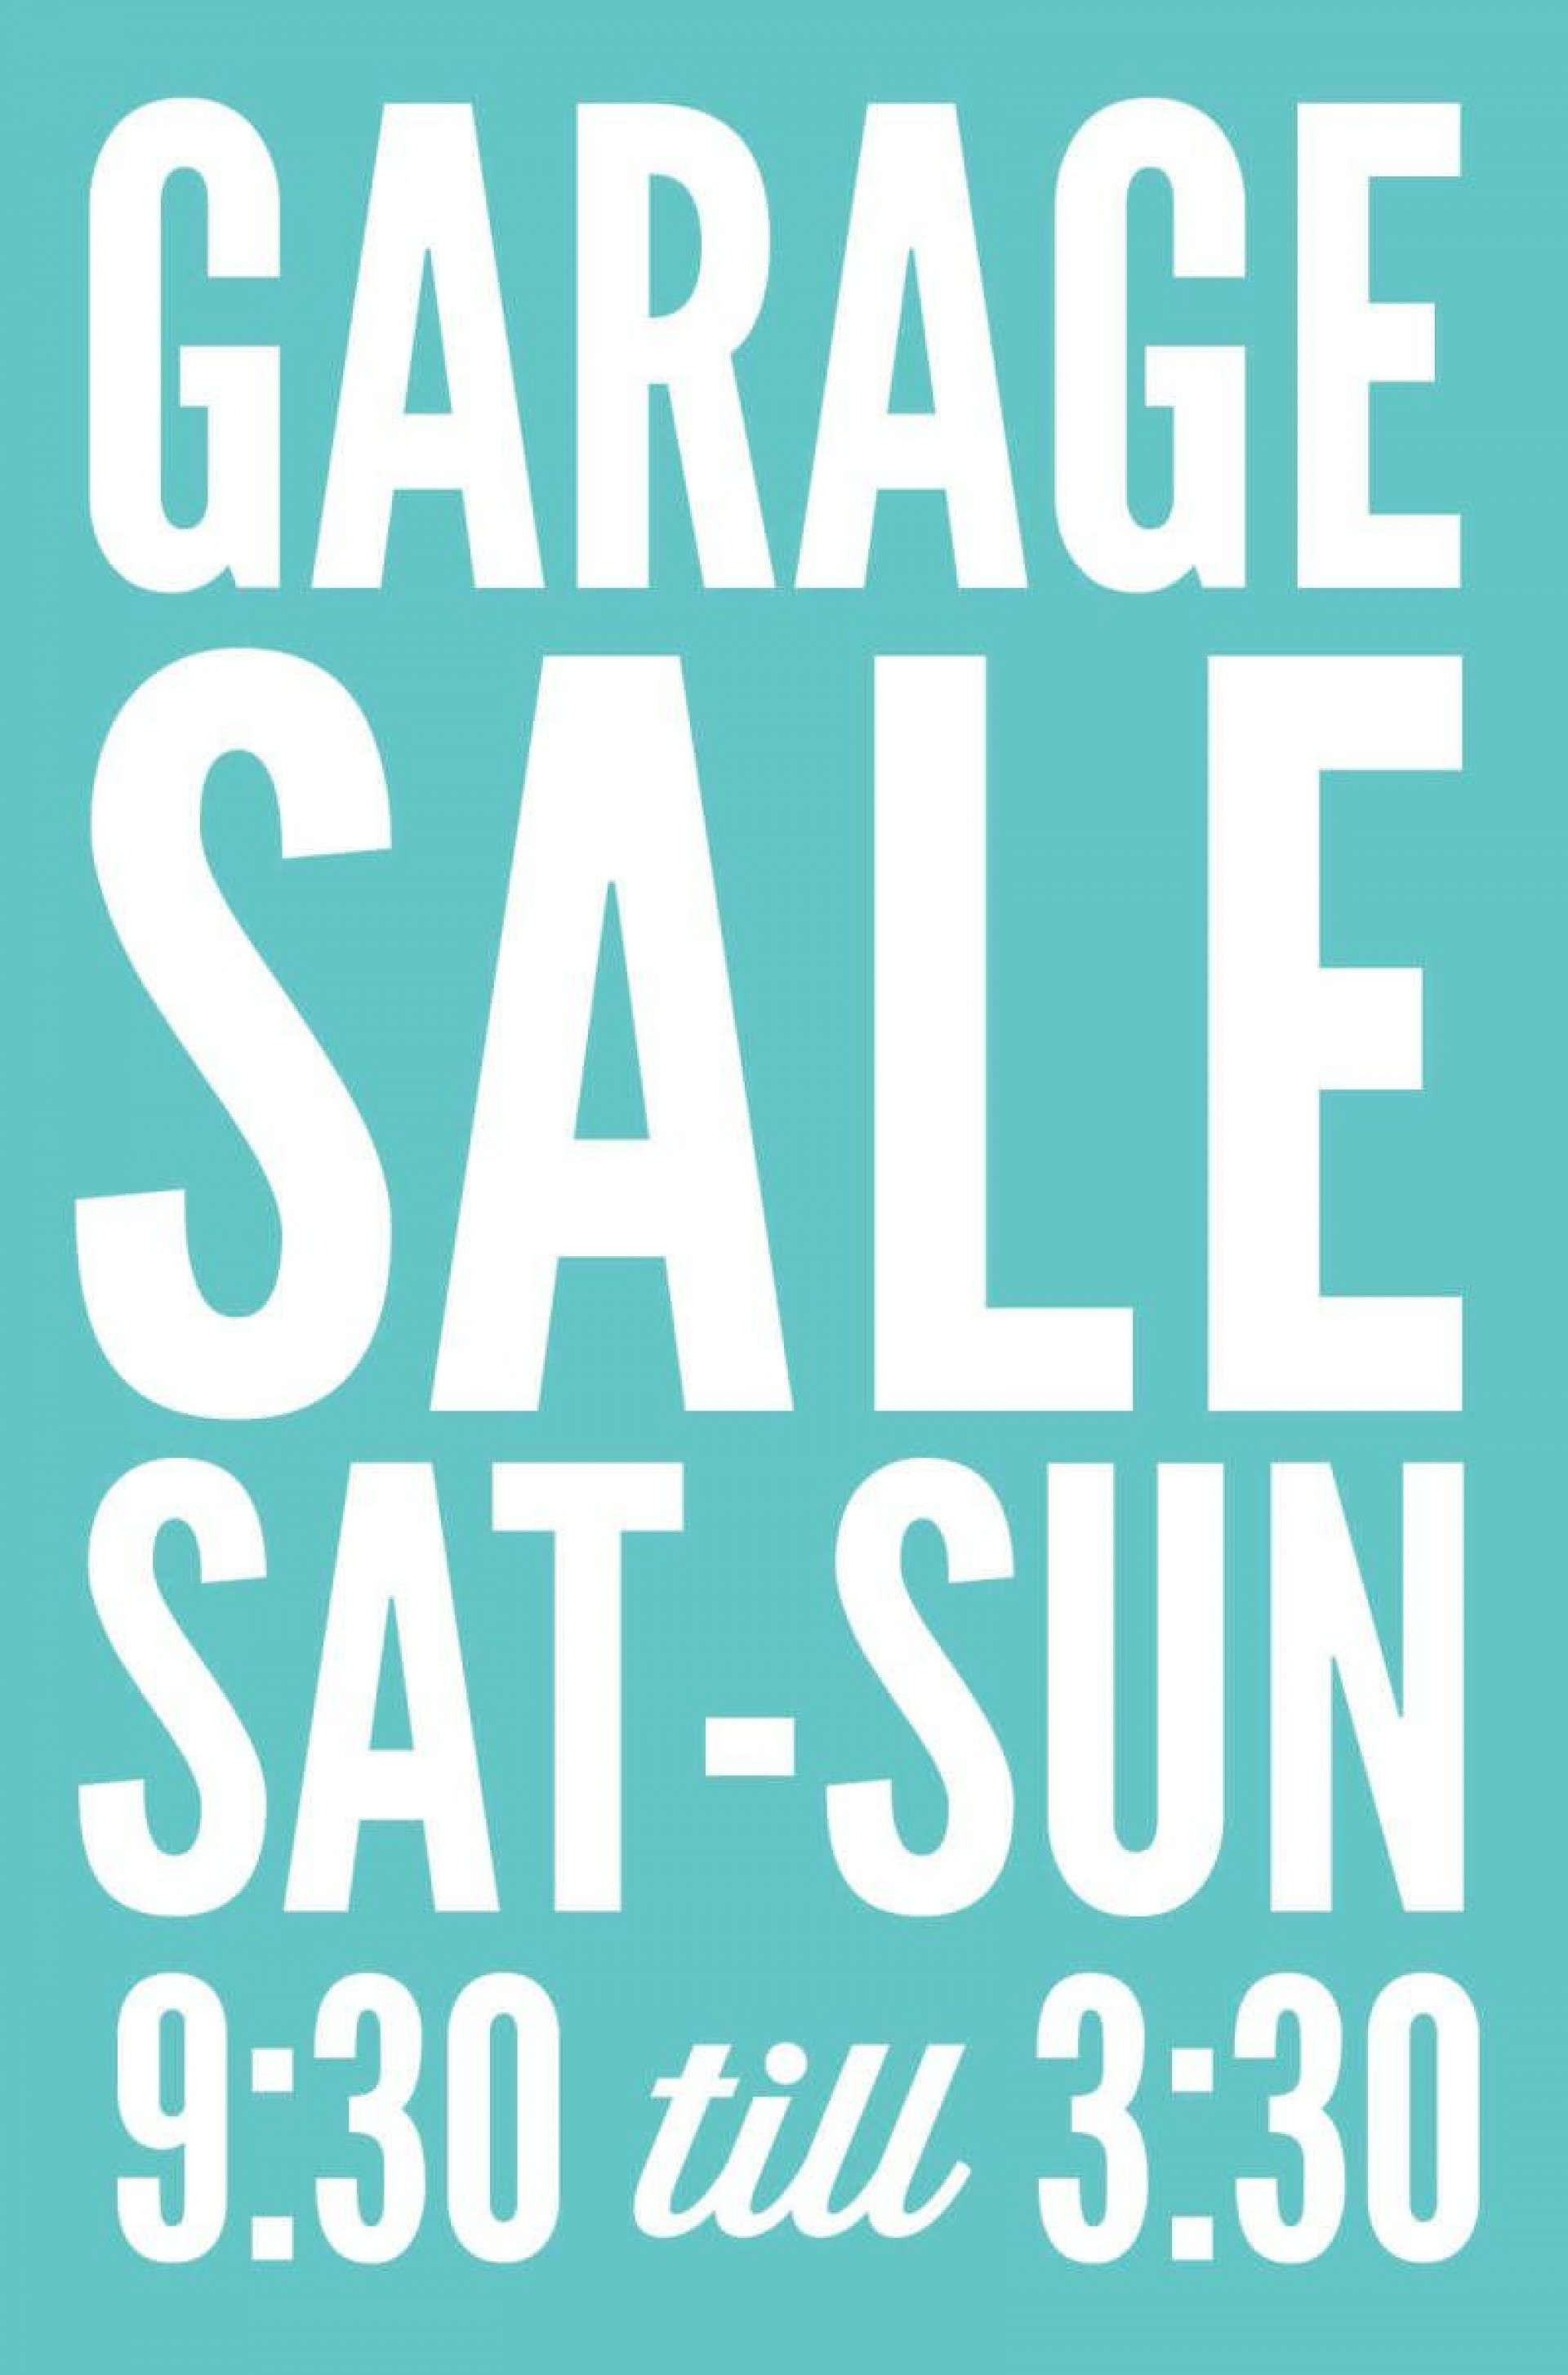 005 Frightening Garage Sale Sign Template Picture  Flyer Microsoft Word Community Yard Free Rummage1920